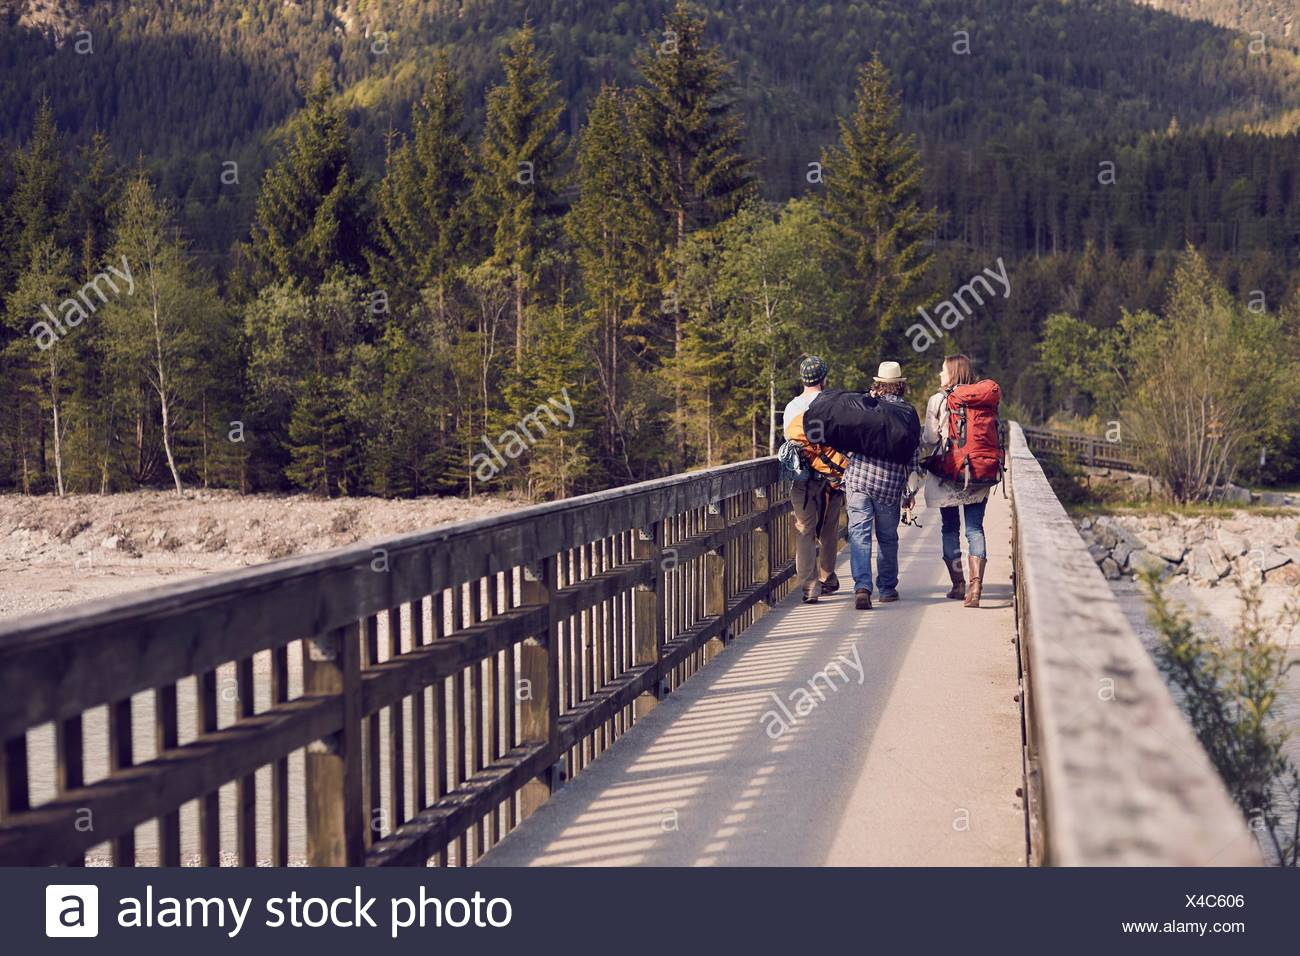 Rear view of three people walking to mountains wearing backpacks - Stock Image